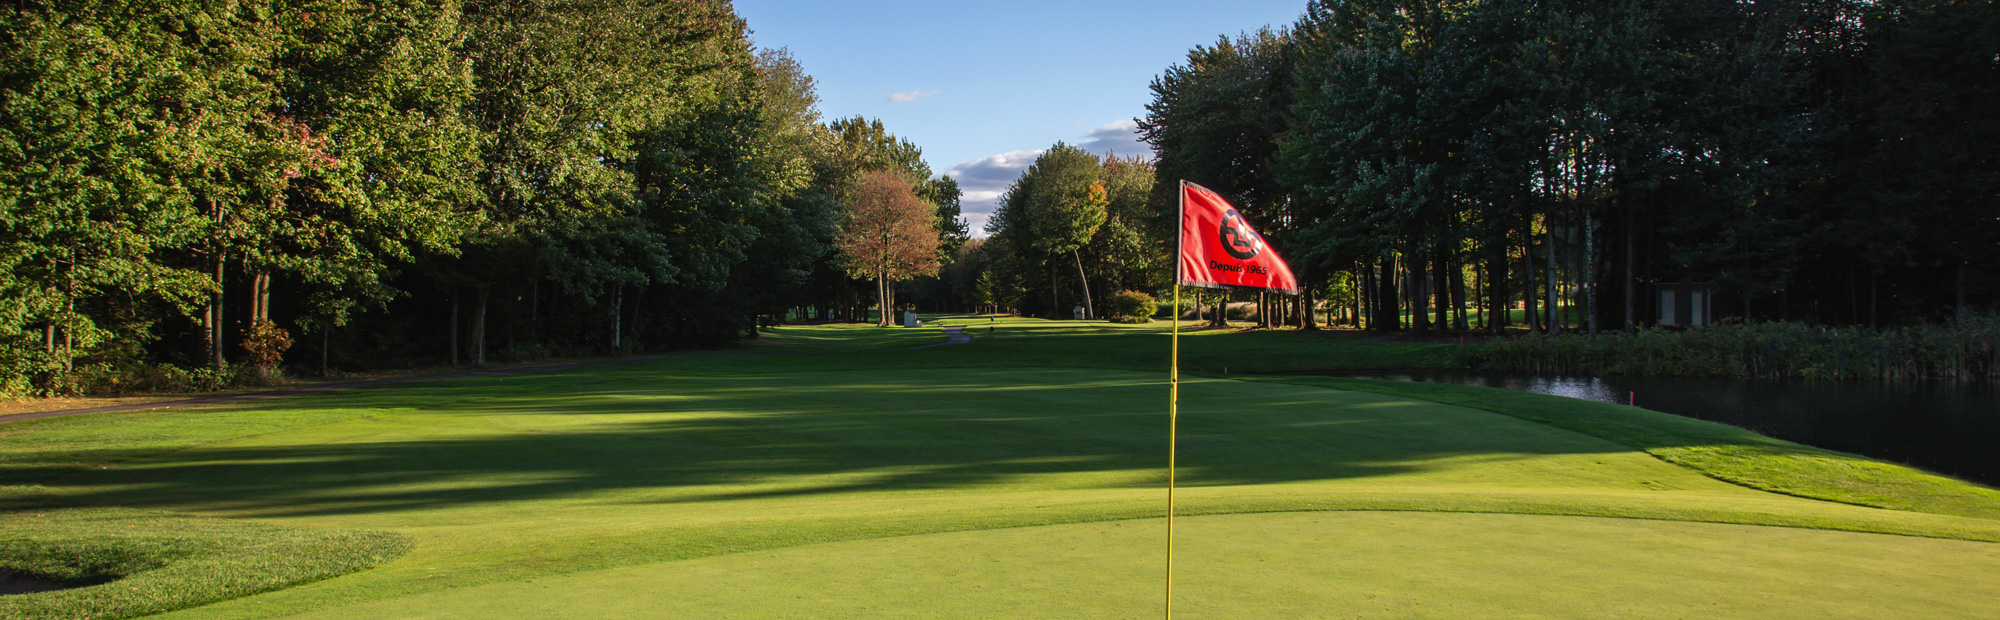 Club-de-golf-de-la-Valle-du-Richelieu8